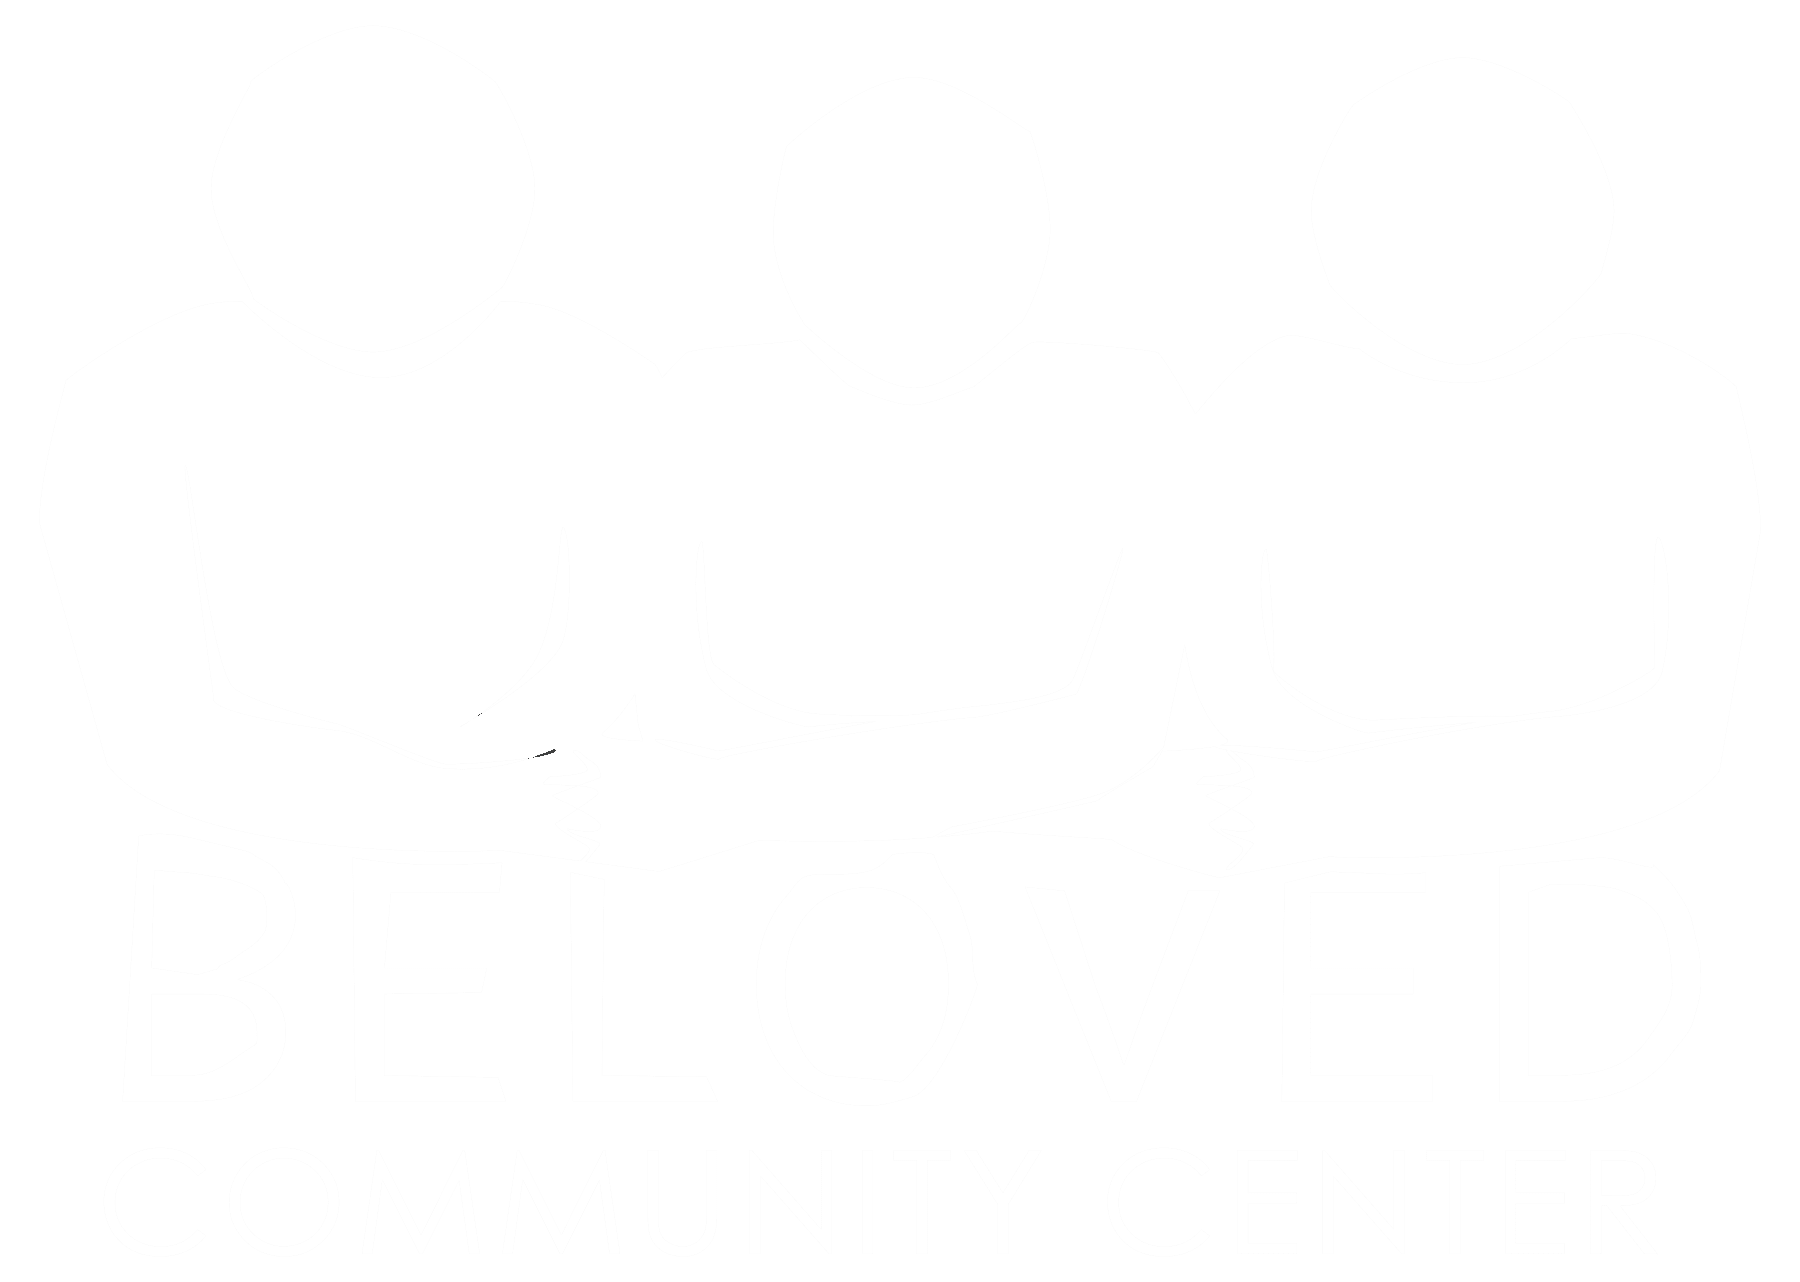 The Beloved Community Center